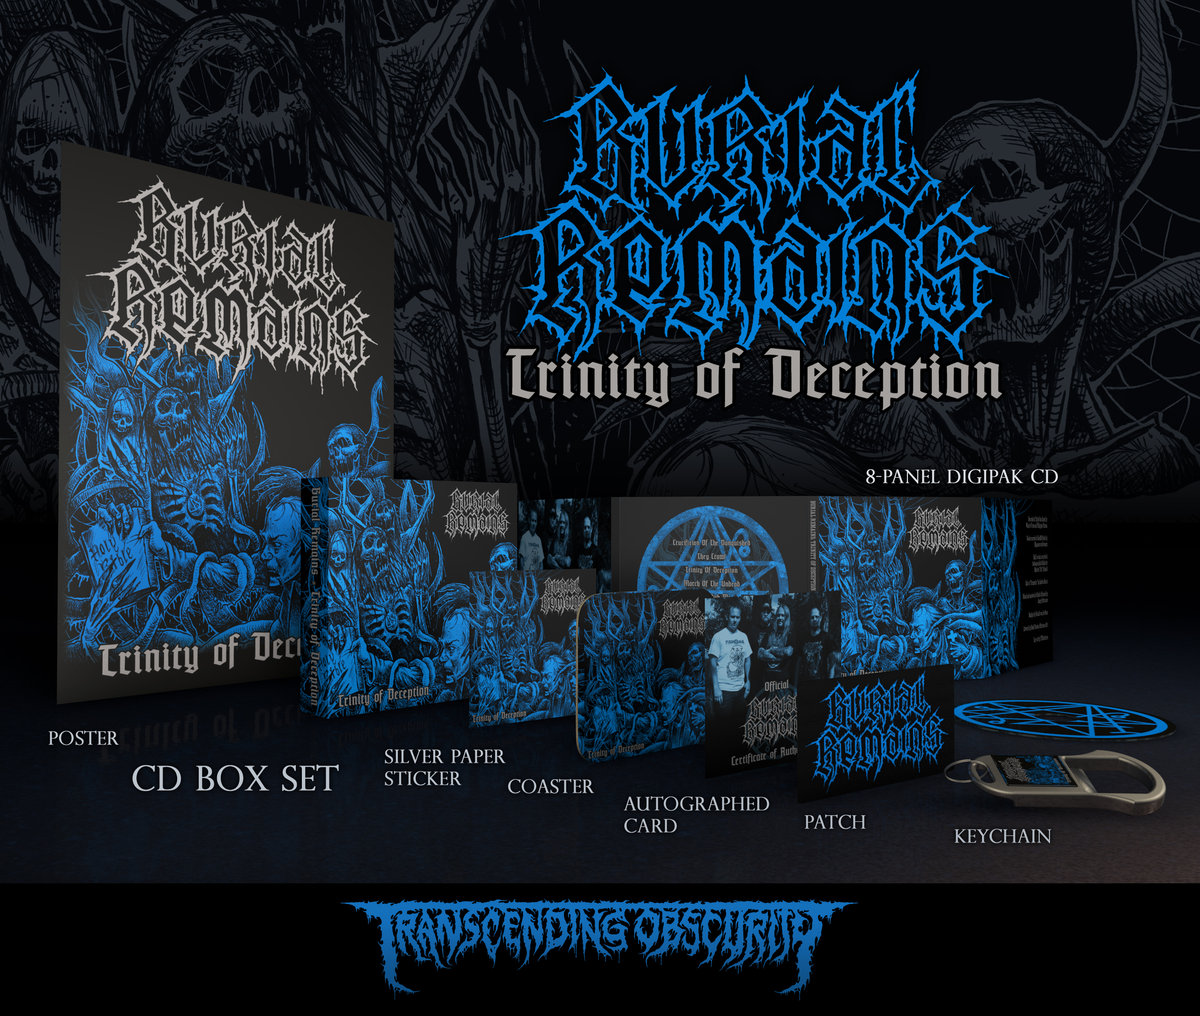 BURIAL REMAINS - Trinity of Deception Silver-embossed Box Set (Limited to 150)